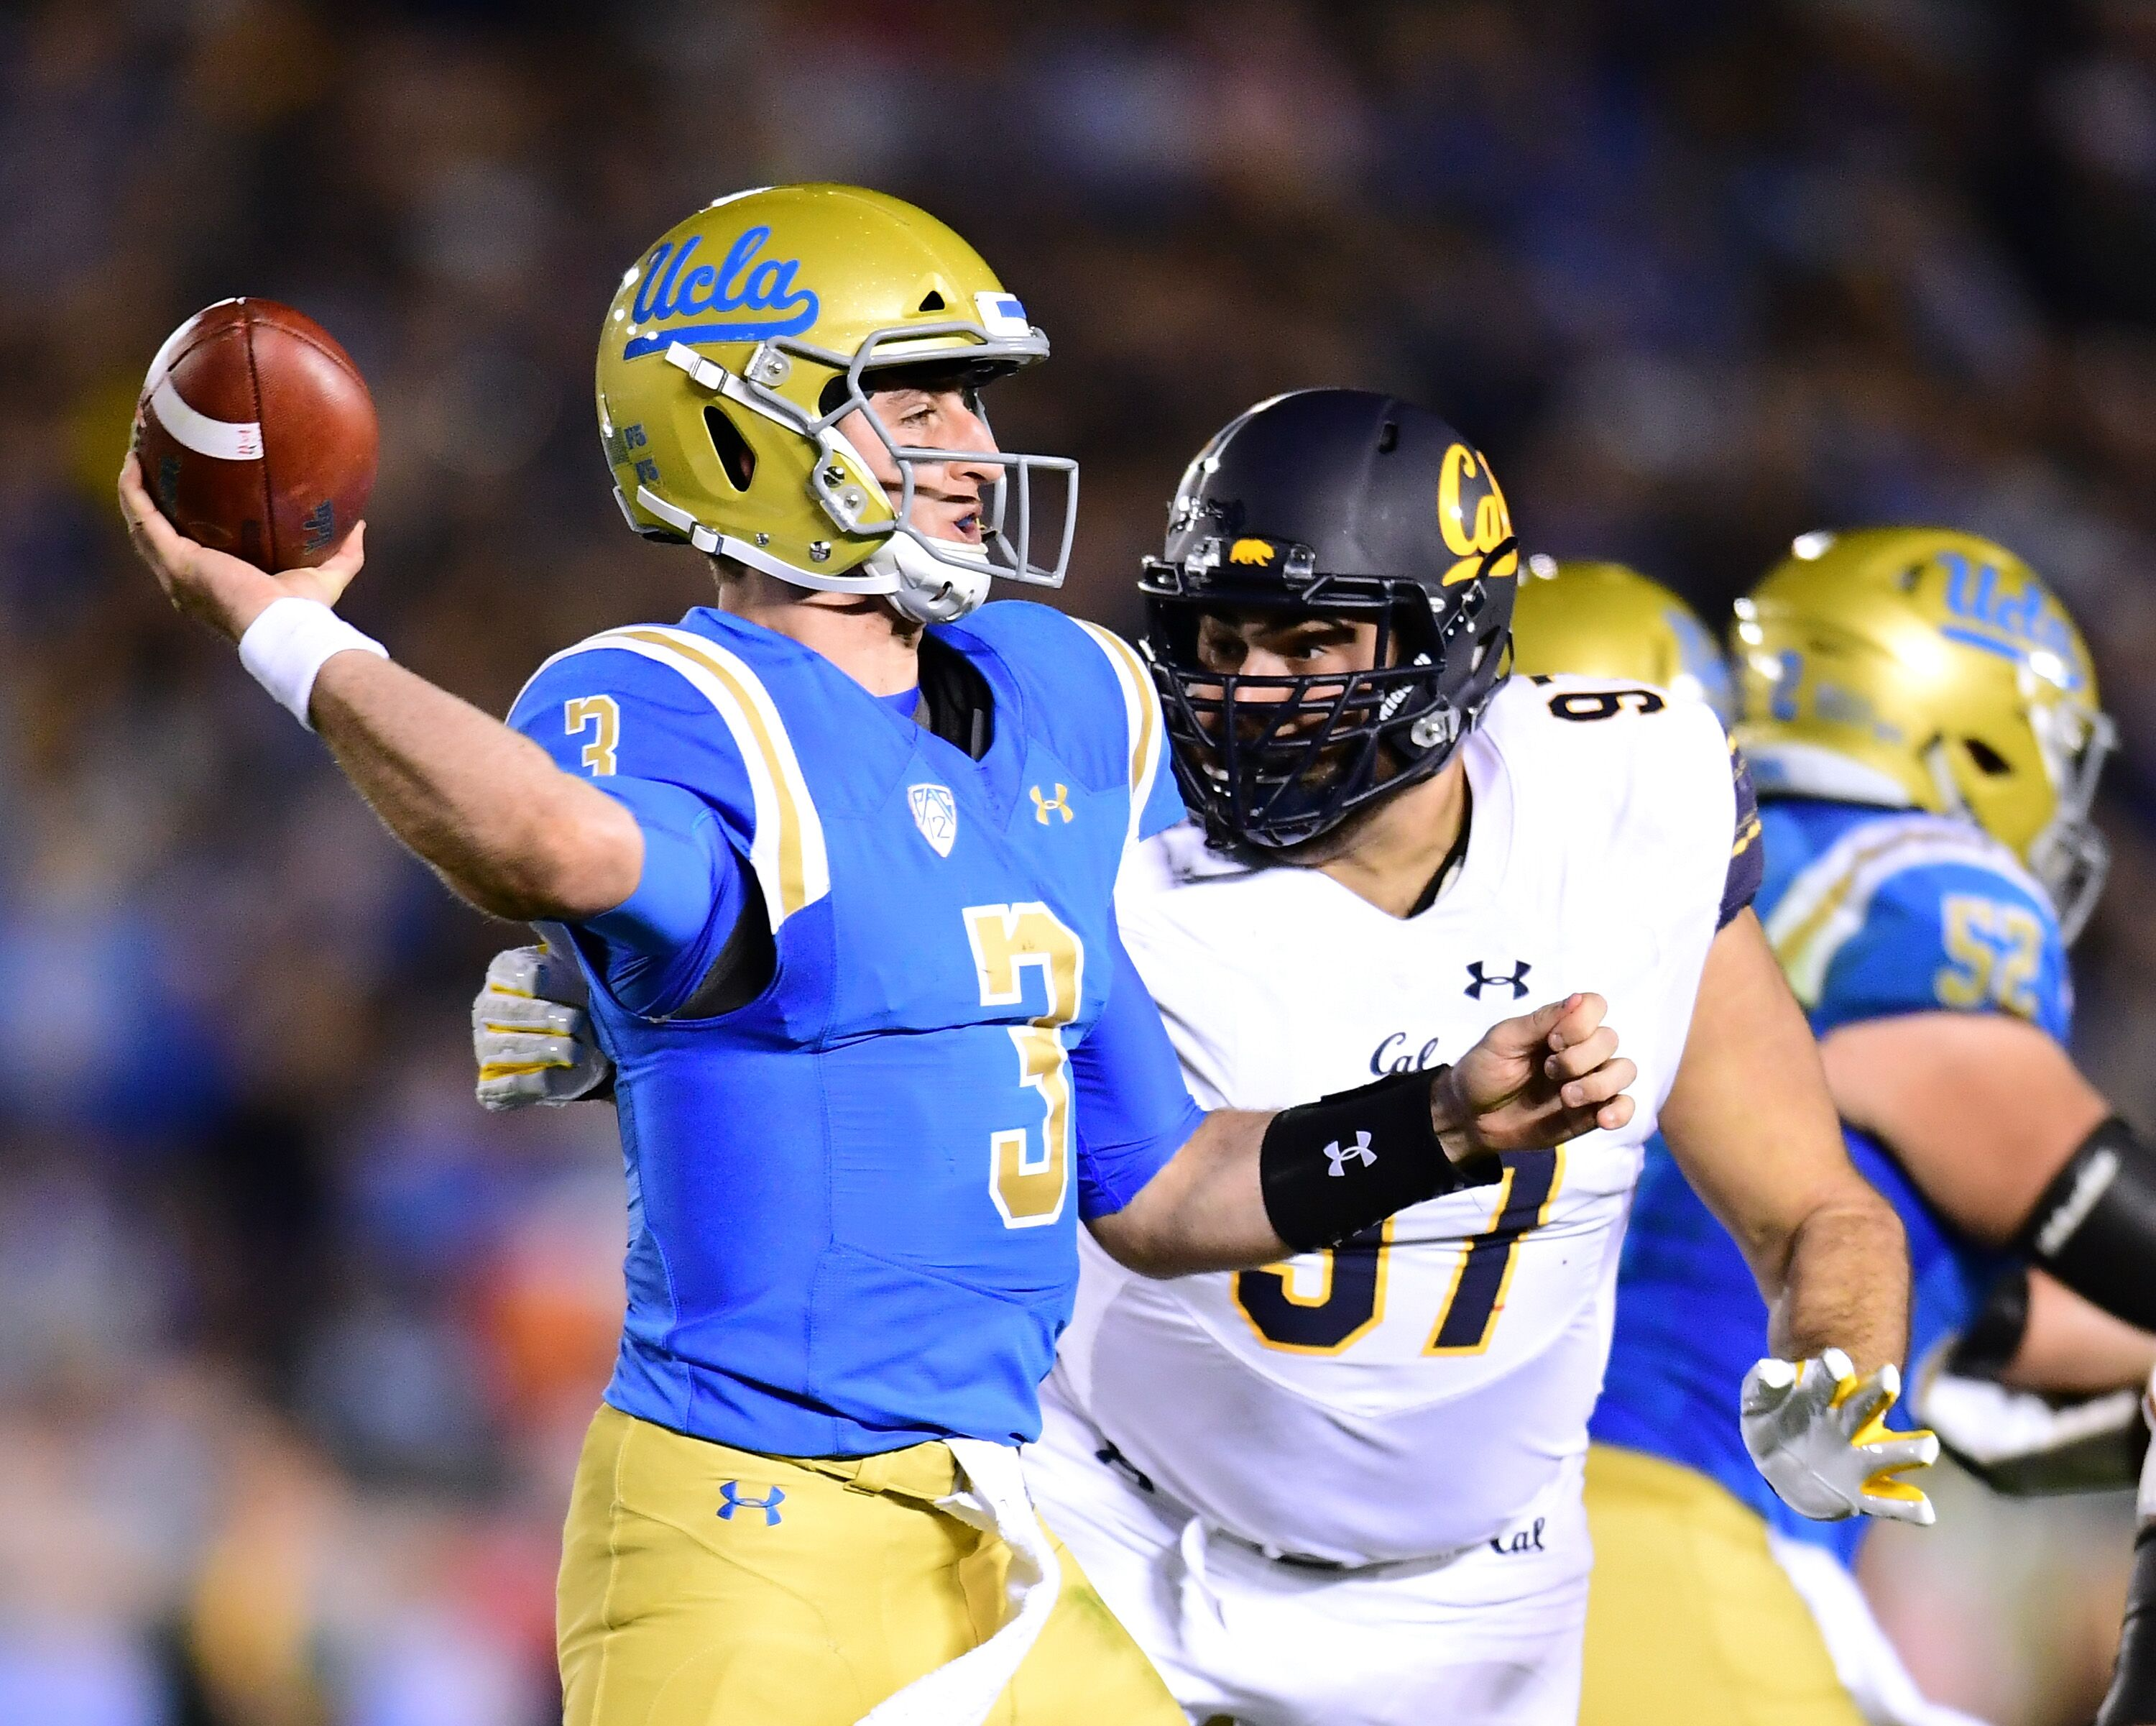 878771838-california-v-ucla.jpg